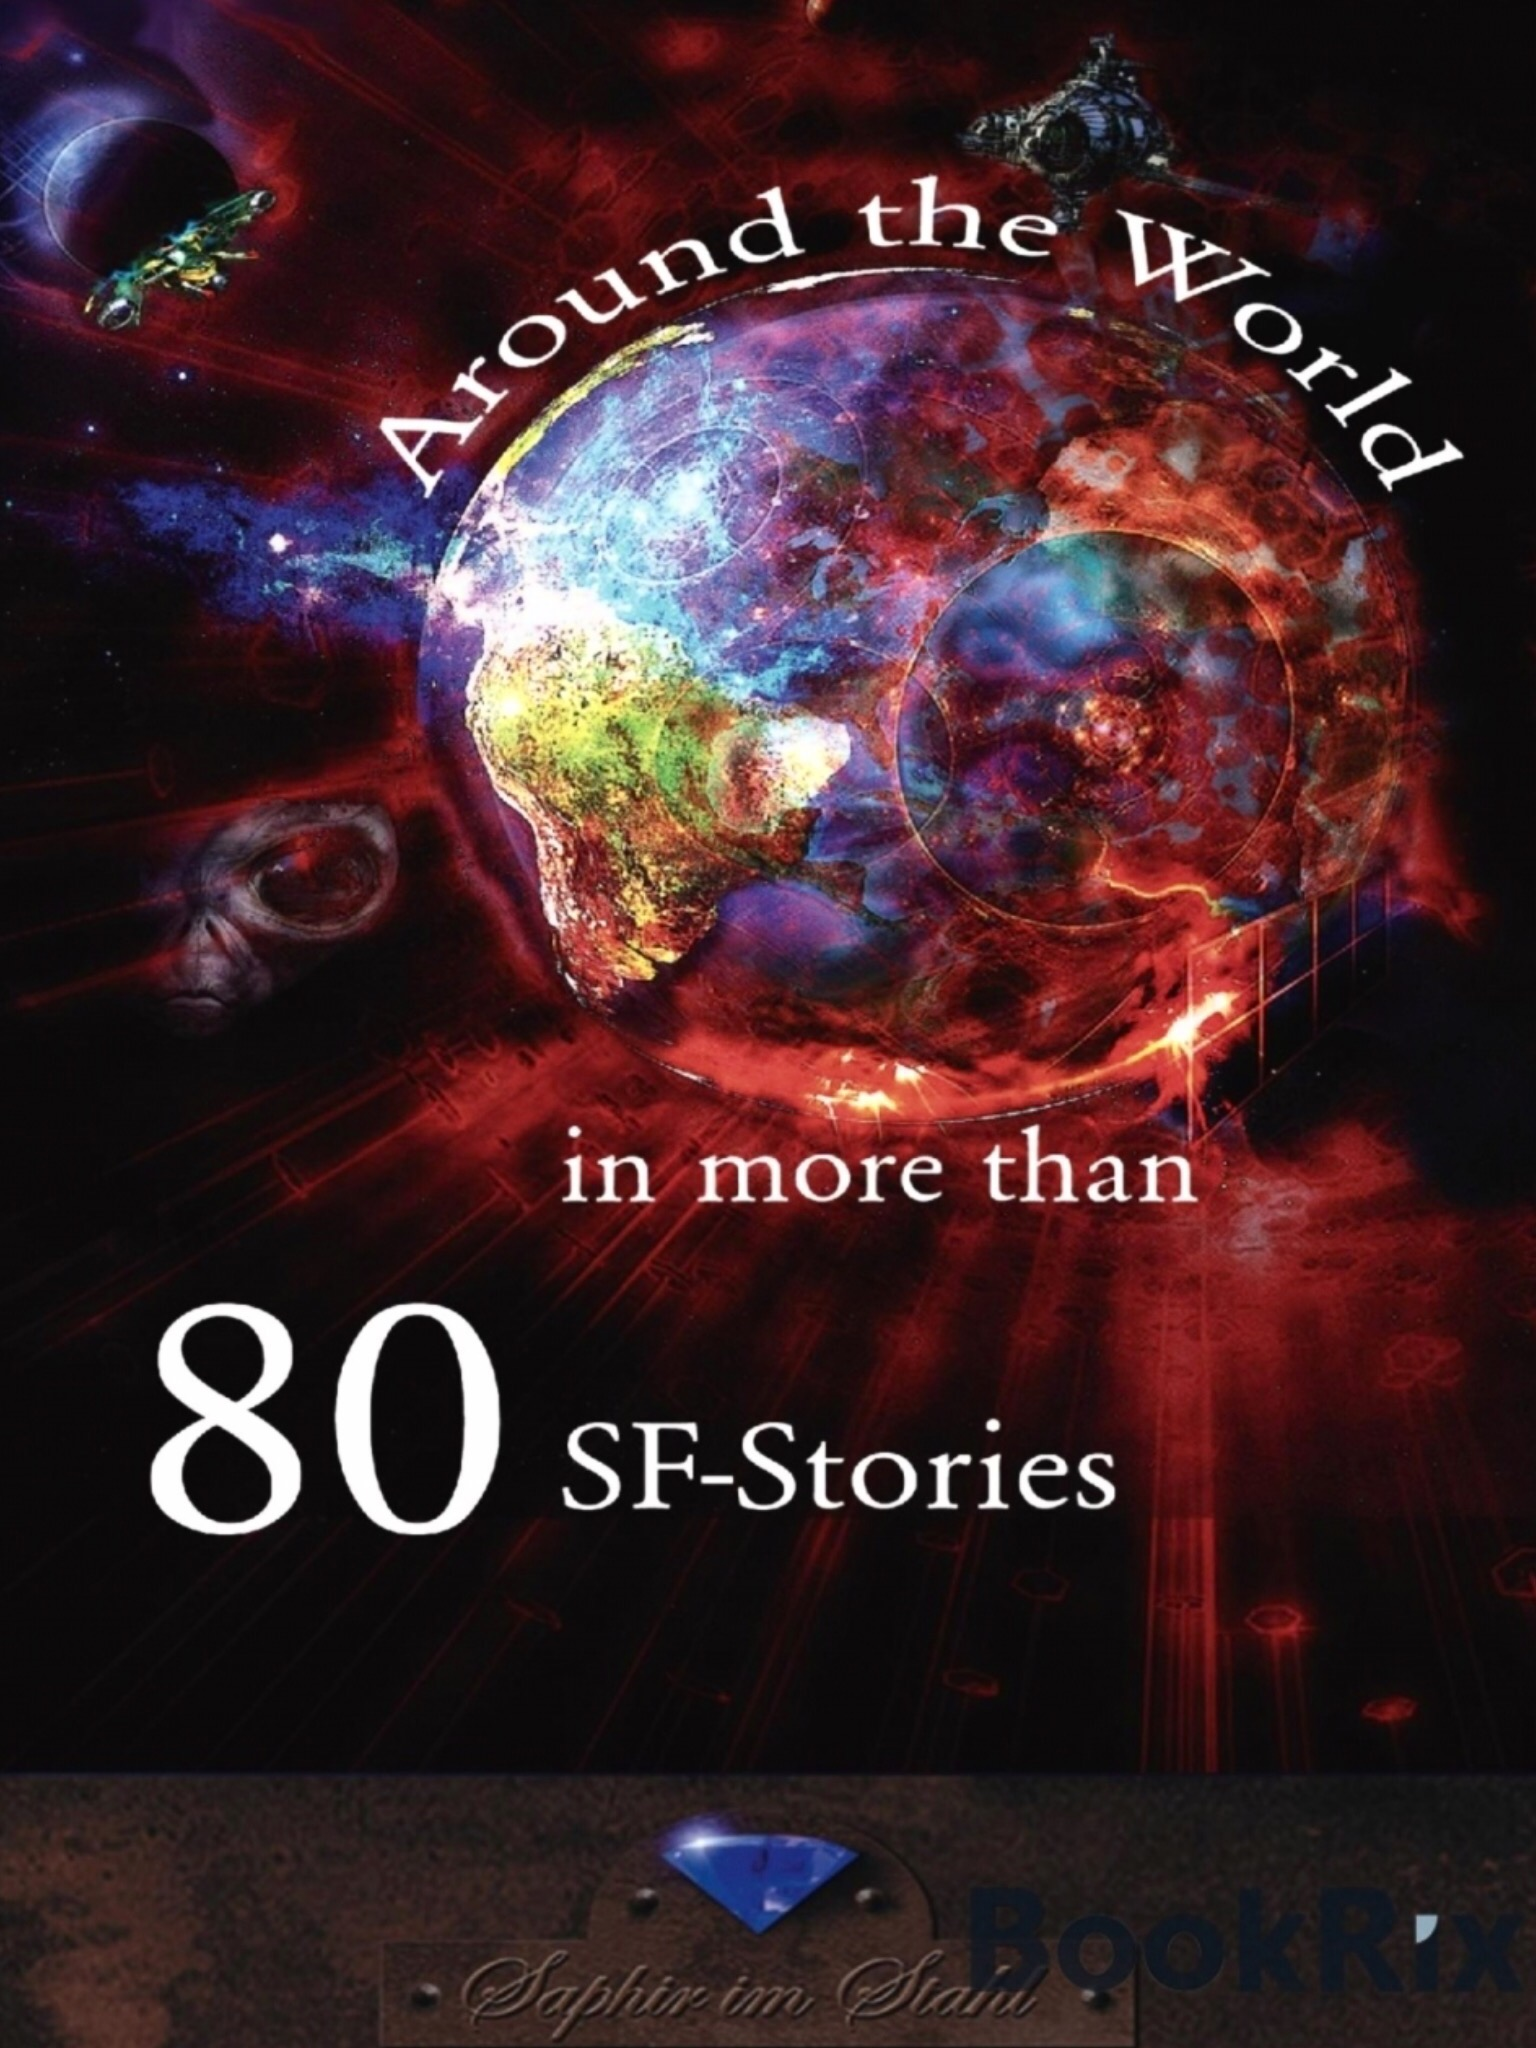 Around the world in 80 SF stories